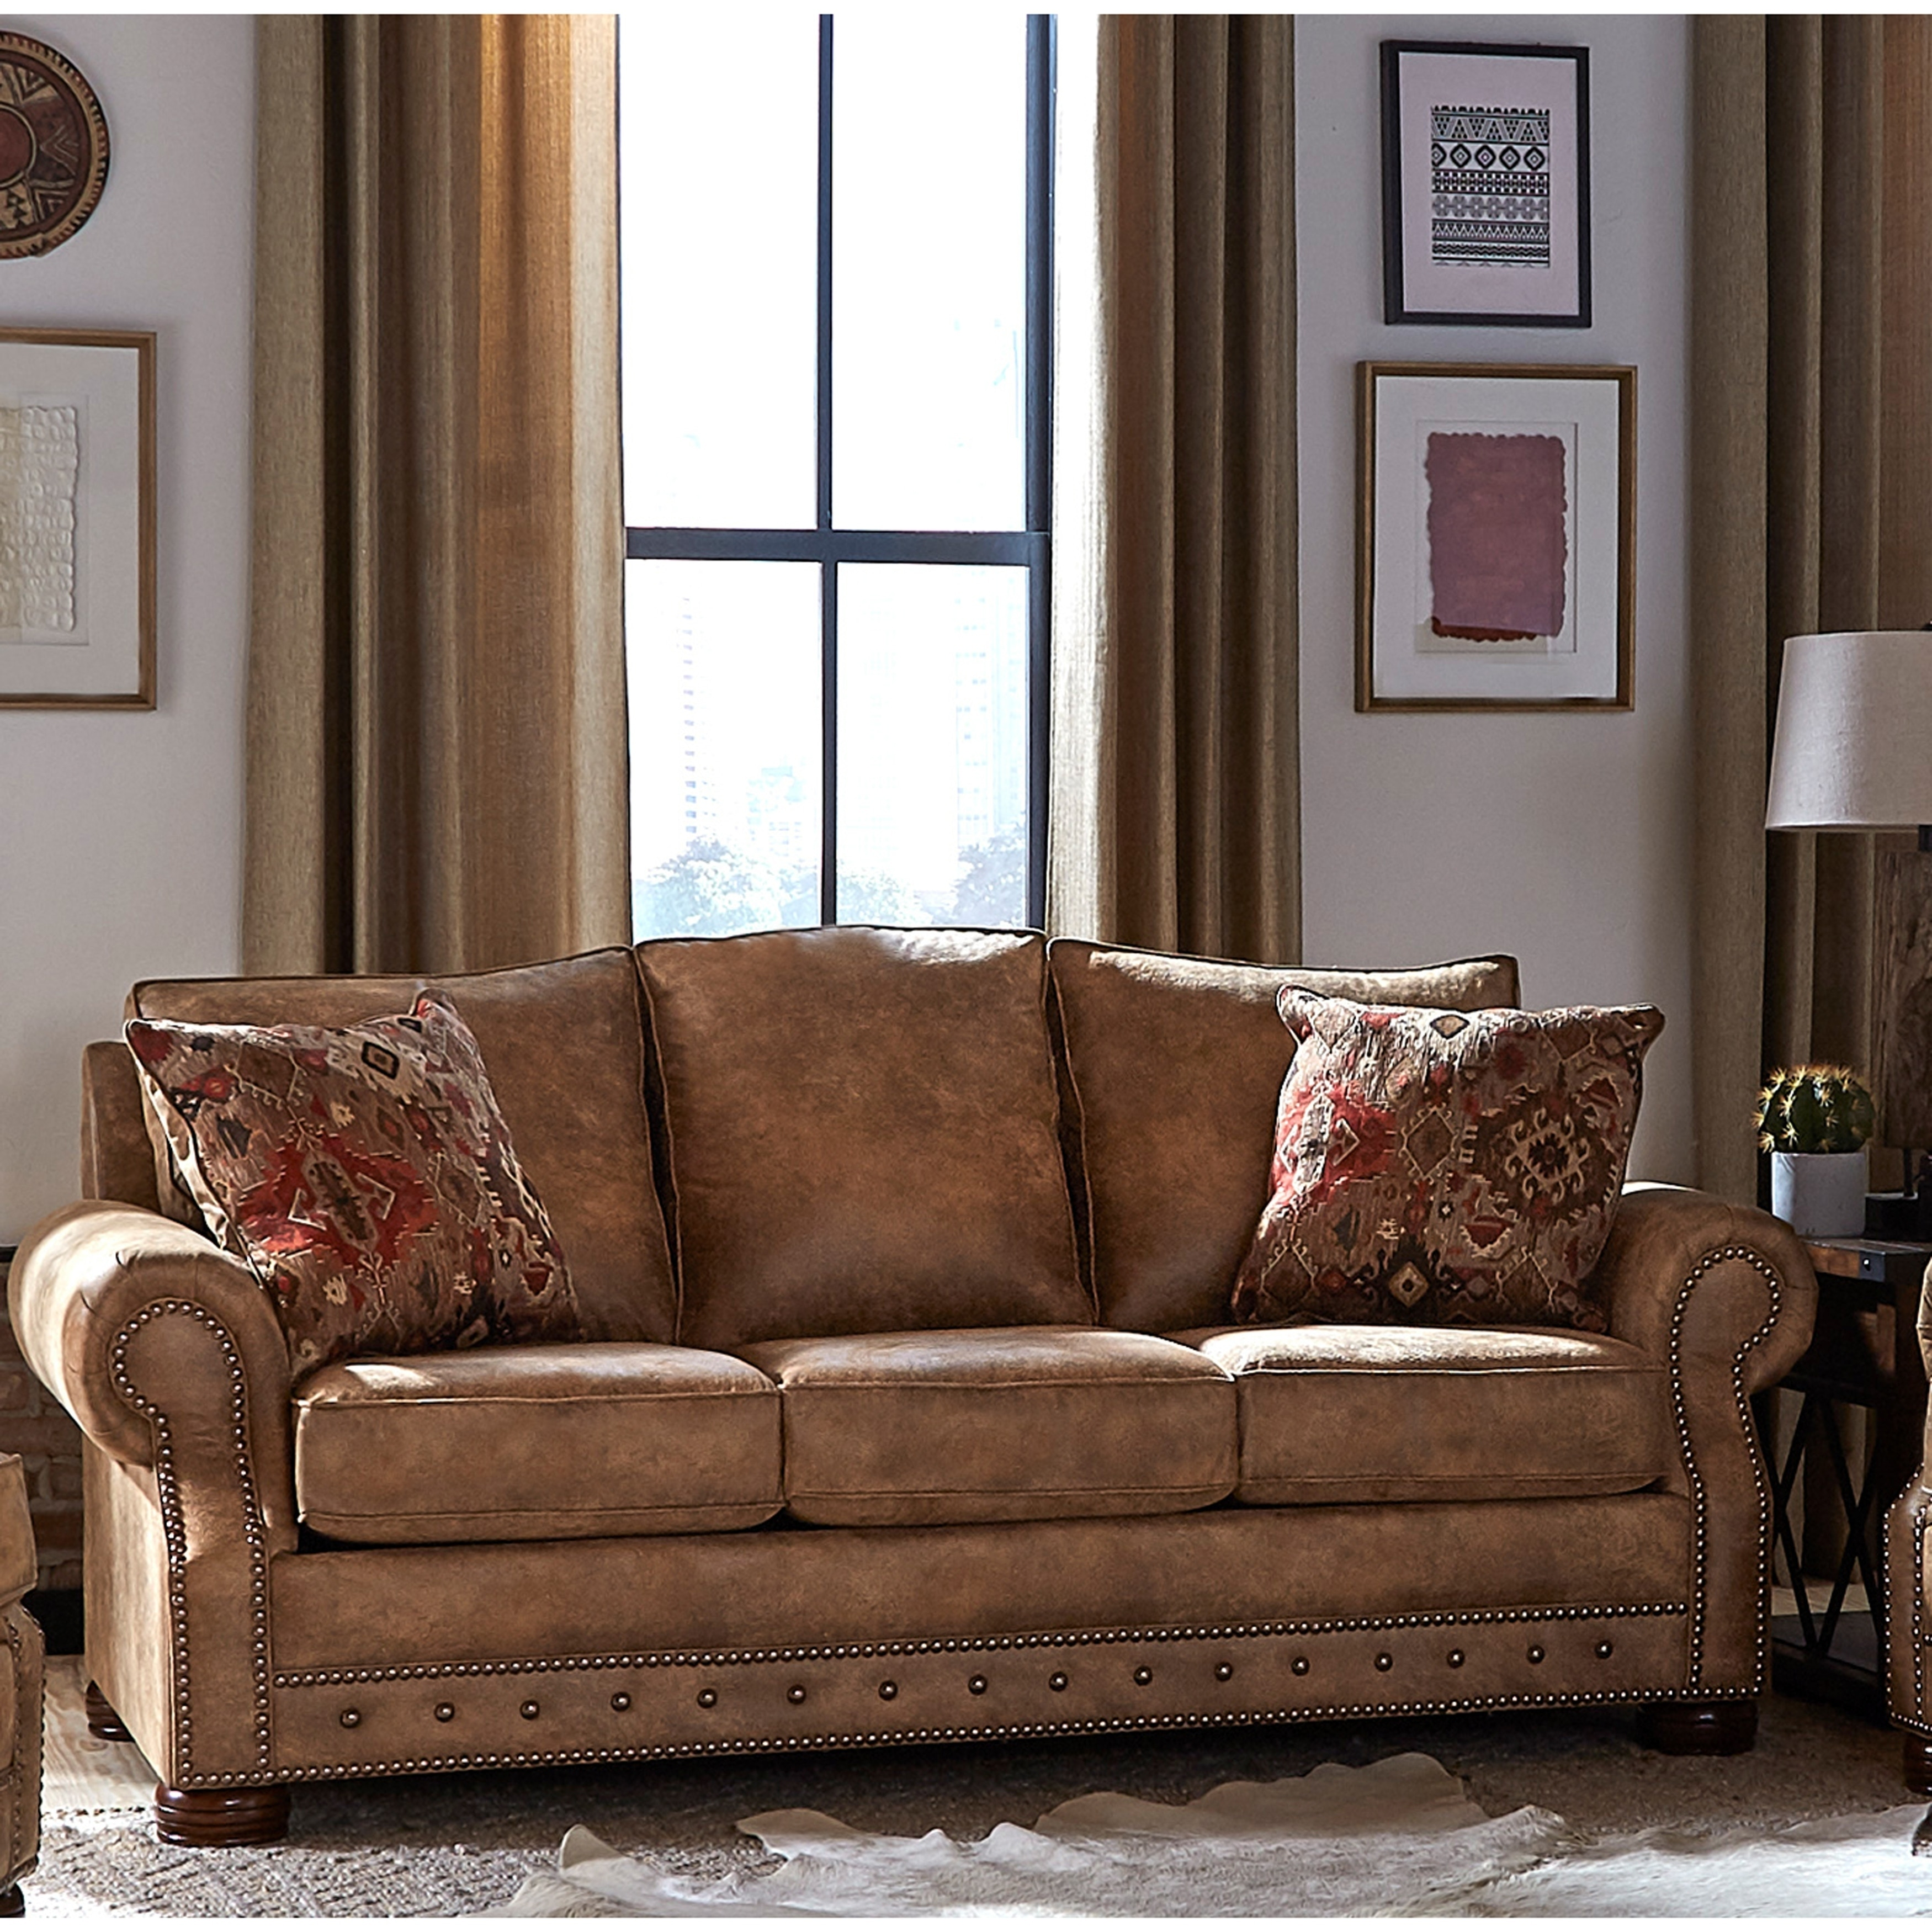 Made In Usa Rancho Rustic Brown Buckskin Fabric Sofa Bed 37 X 86 X 40 On Sale Overstock 27415218